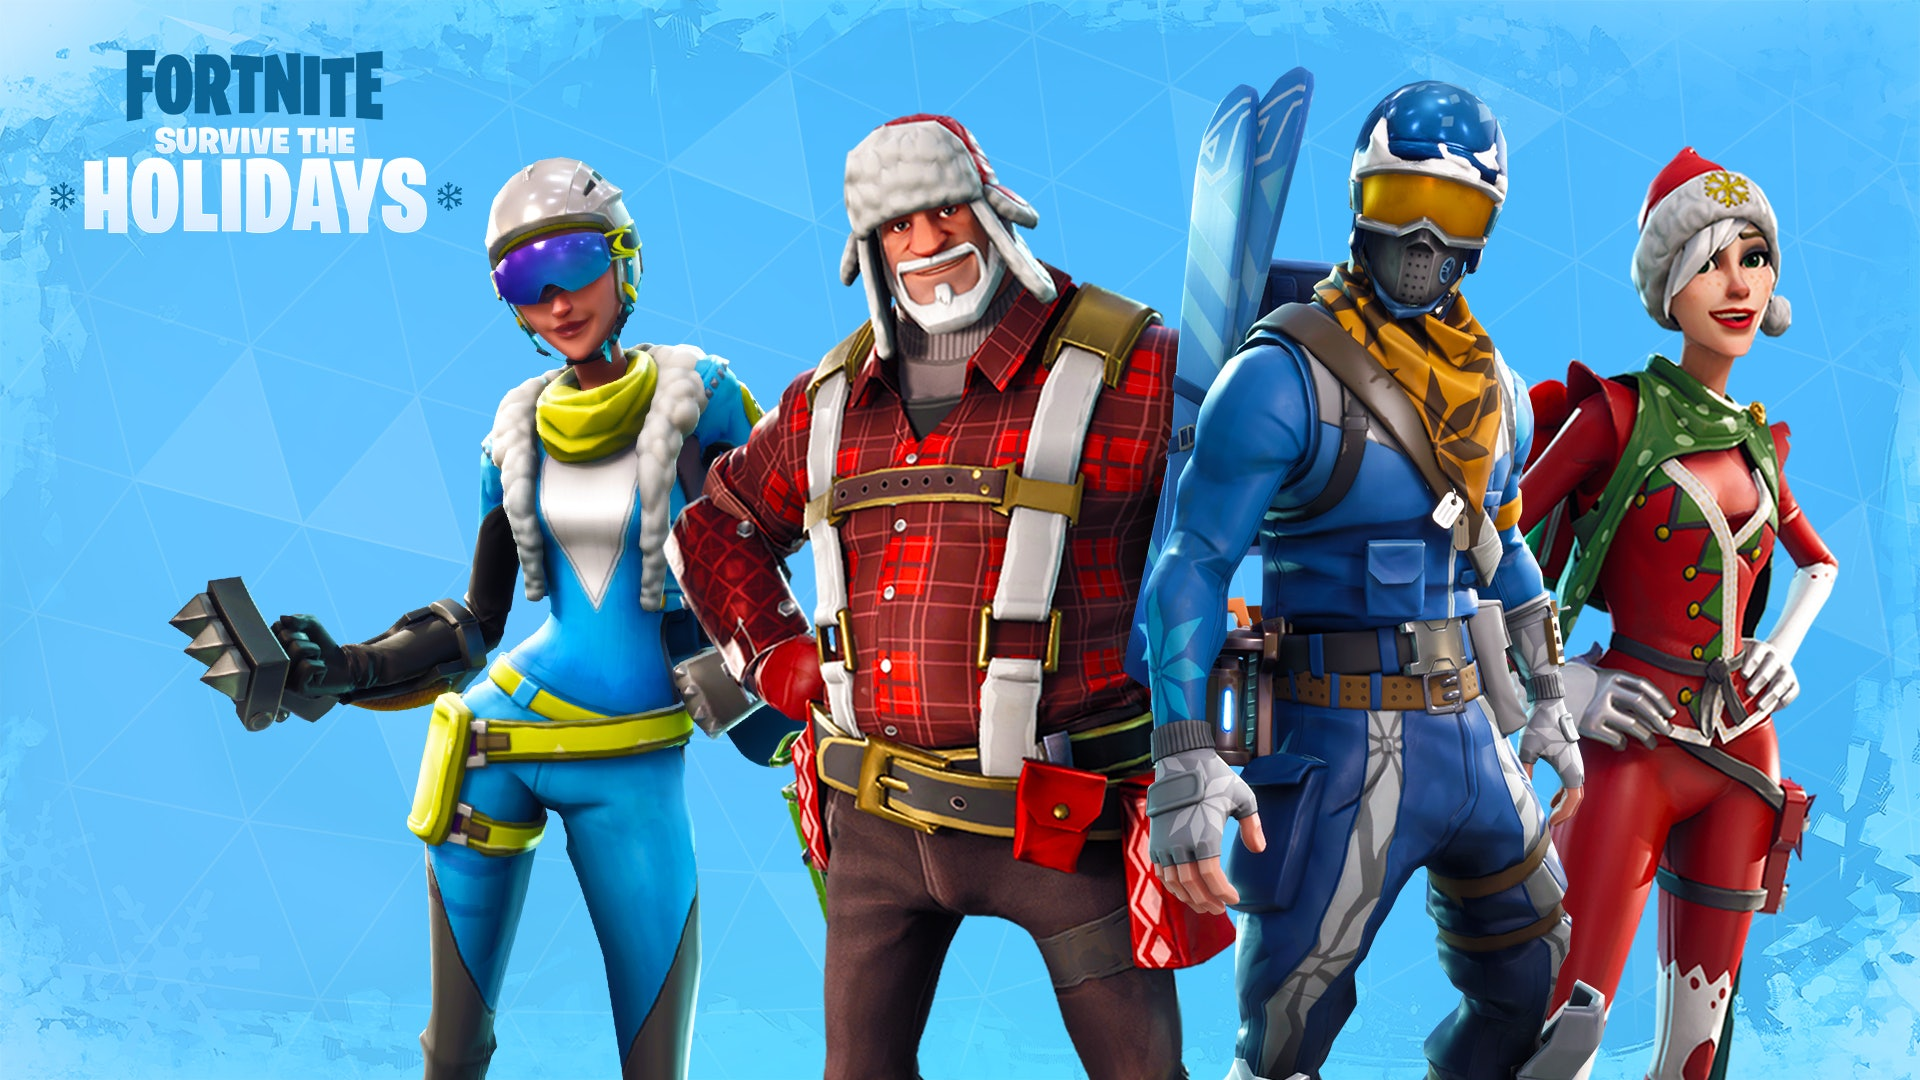 'Fortnite' Survive the Holidays